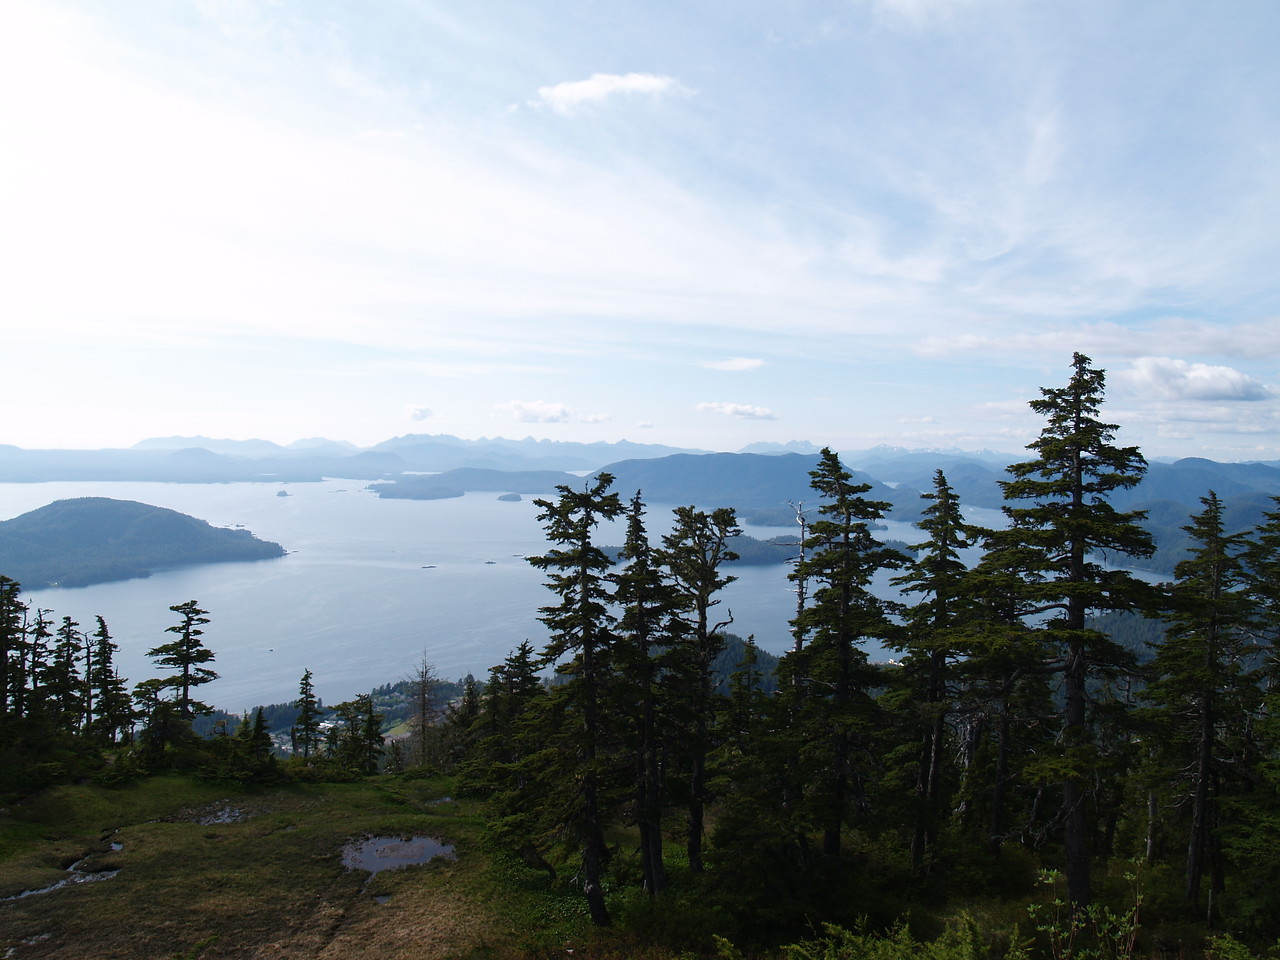 Harbor Mountain view - Sitka, Alaska